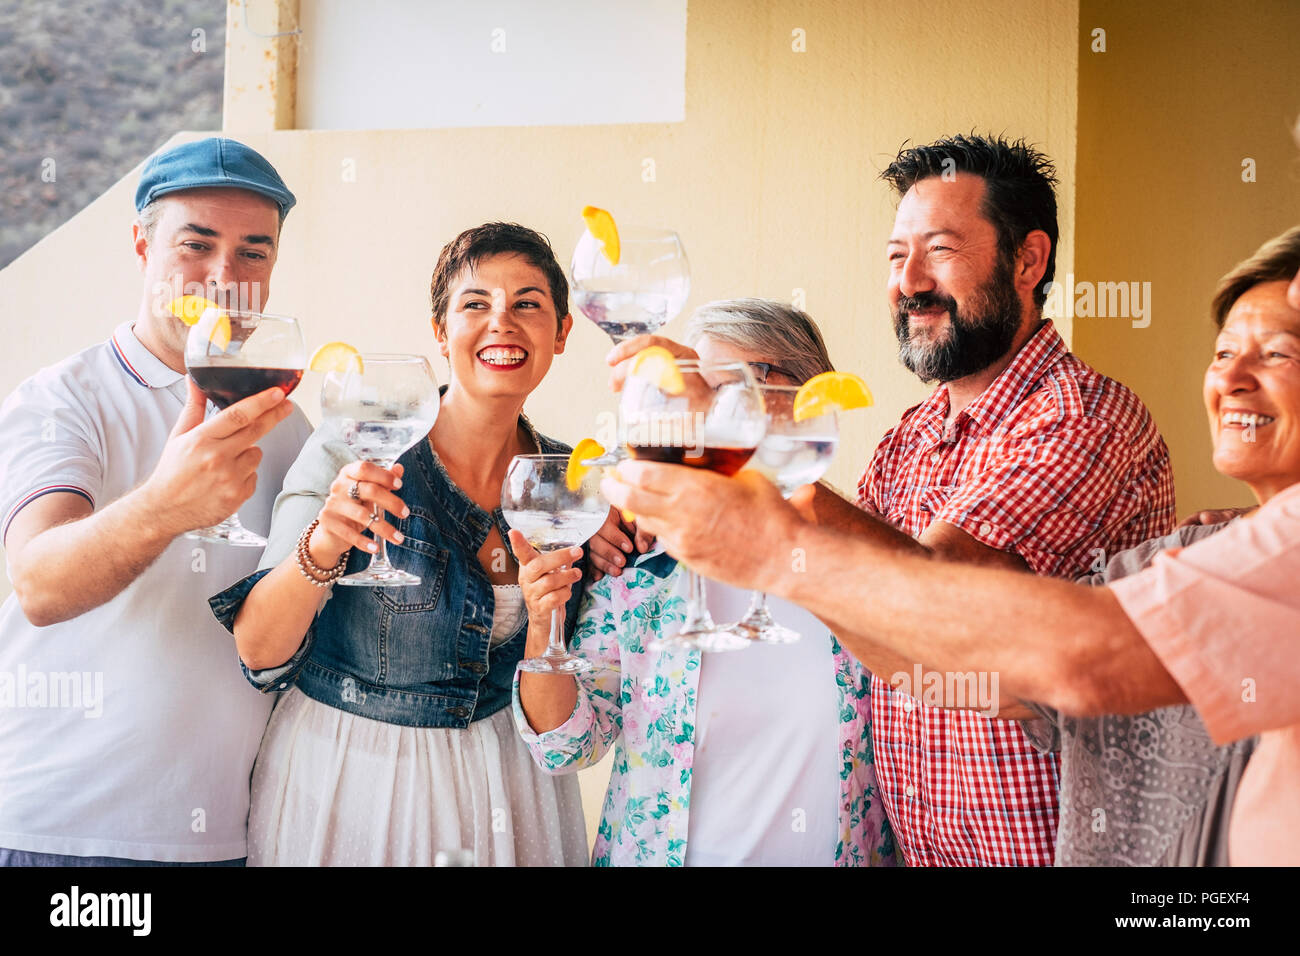 mixed ages group of caucasian people having fun together celebrating an event drinking cocktail with red wine of white vodka. holiday concept with hap - Stock Image